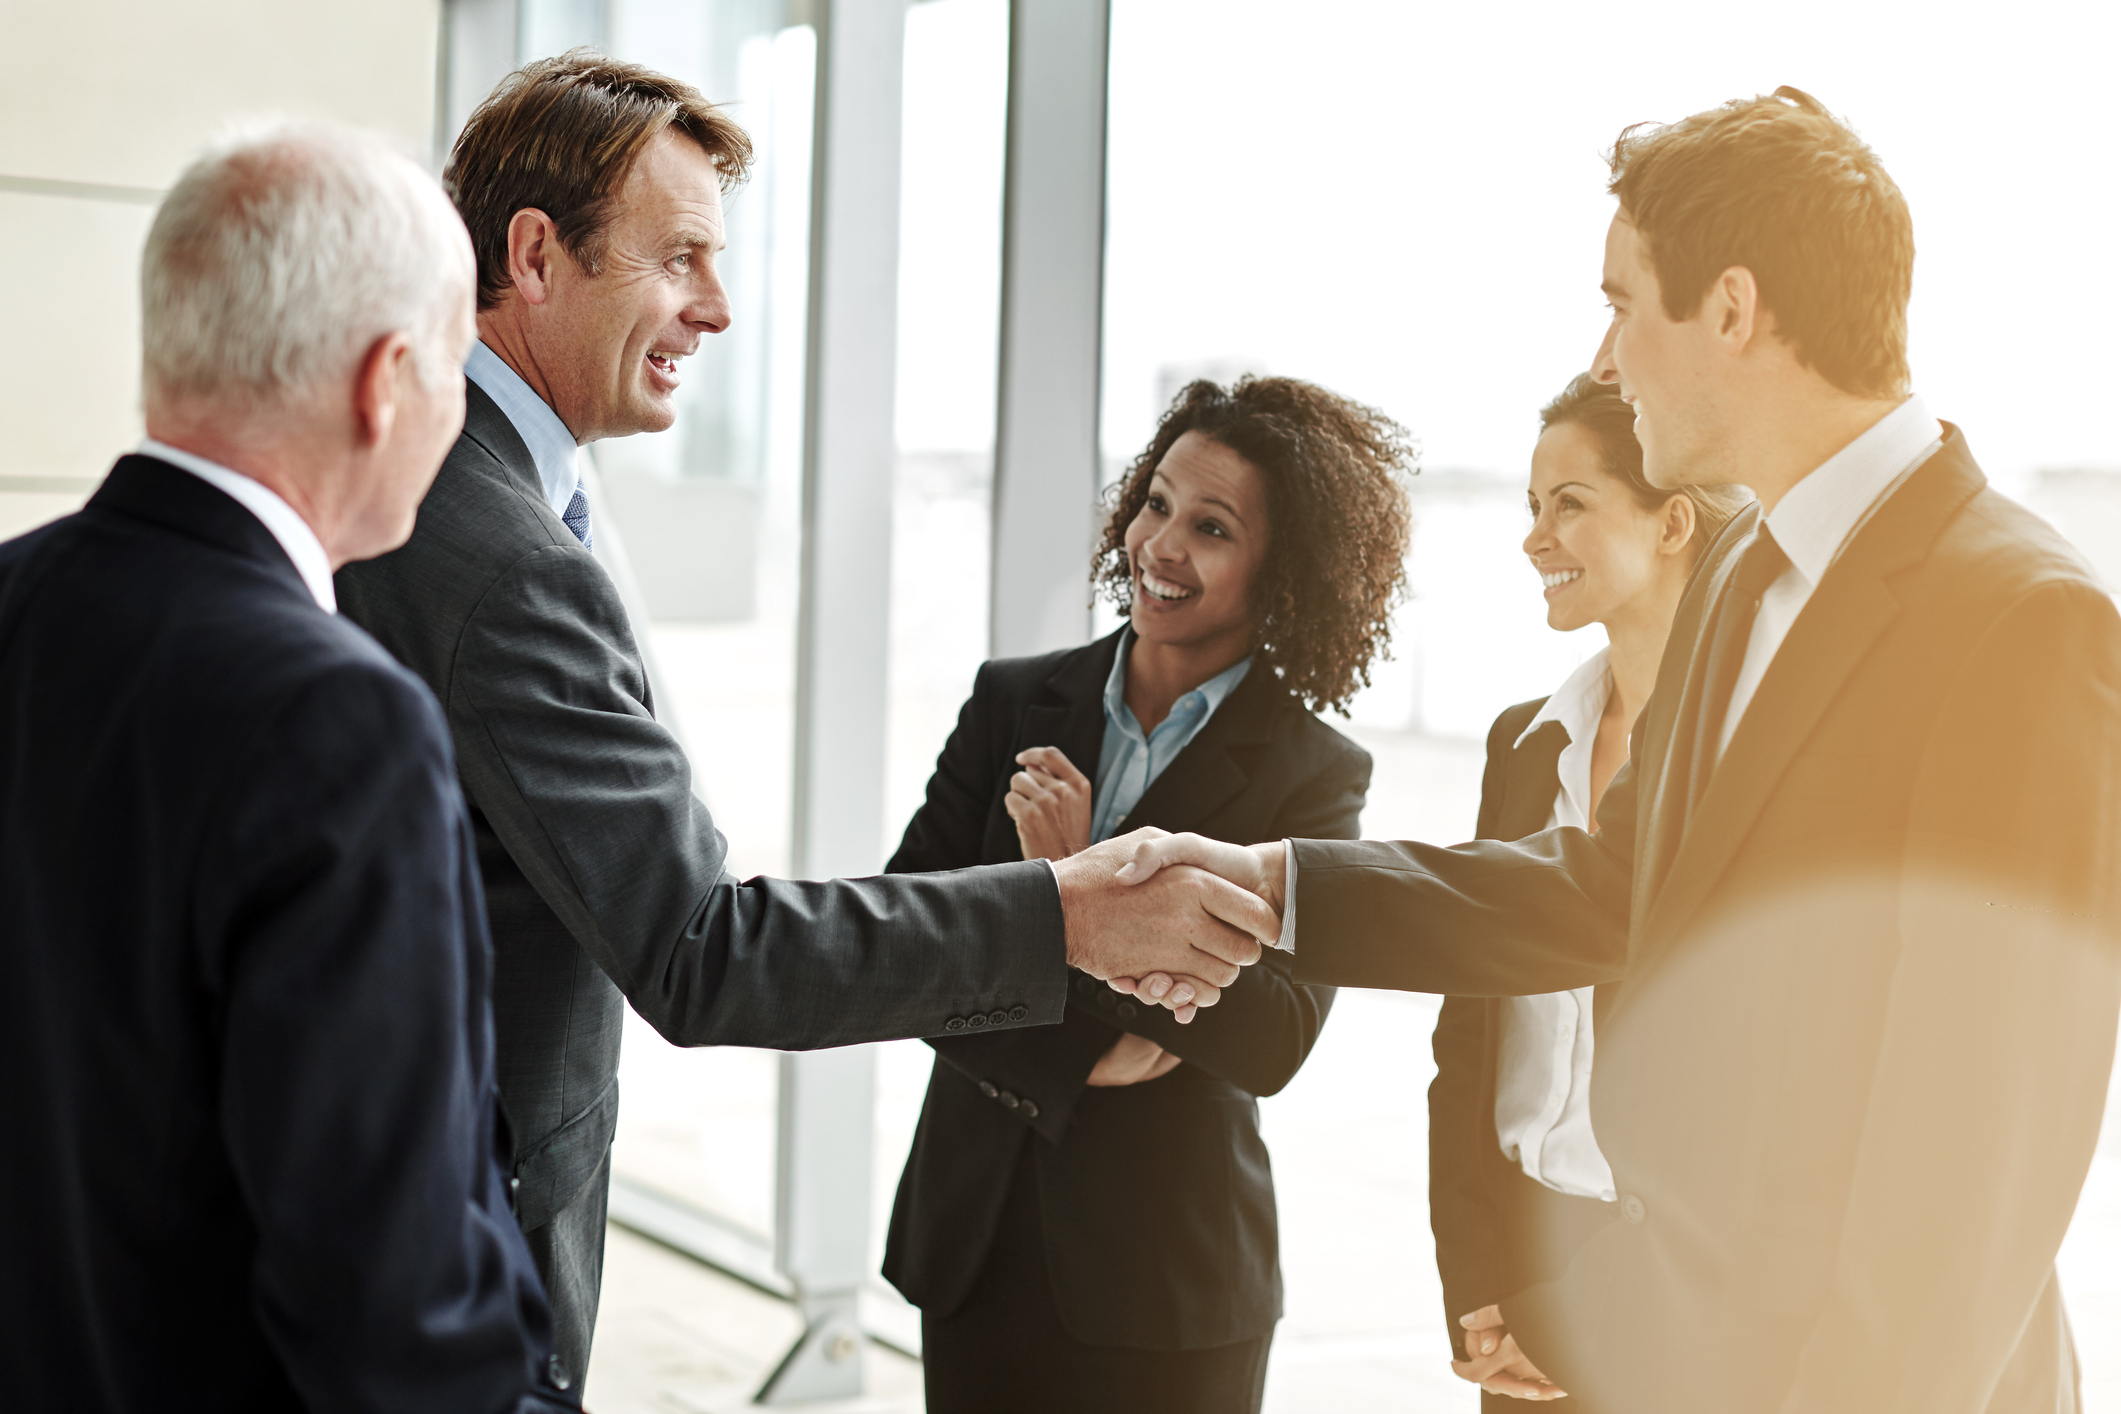 Cropped shot of two businesspeople shaking hands while their colleagues look onhttp://195.154.178.81/DATA/i_collage/pu/shoots/805440.jpg